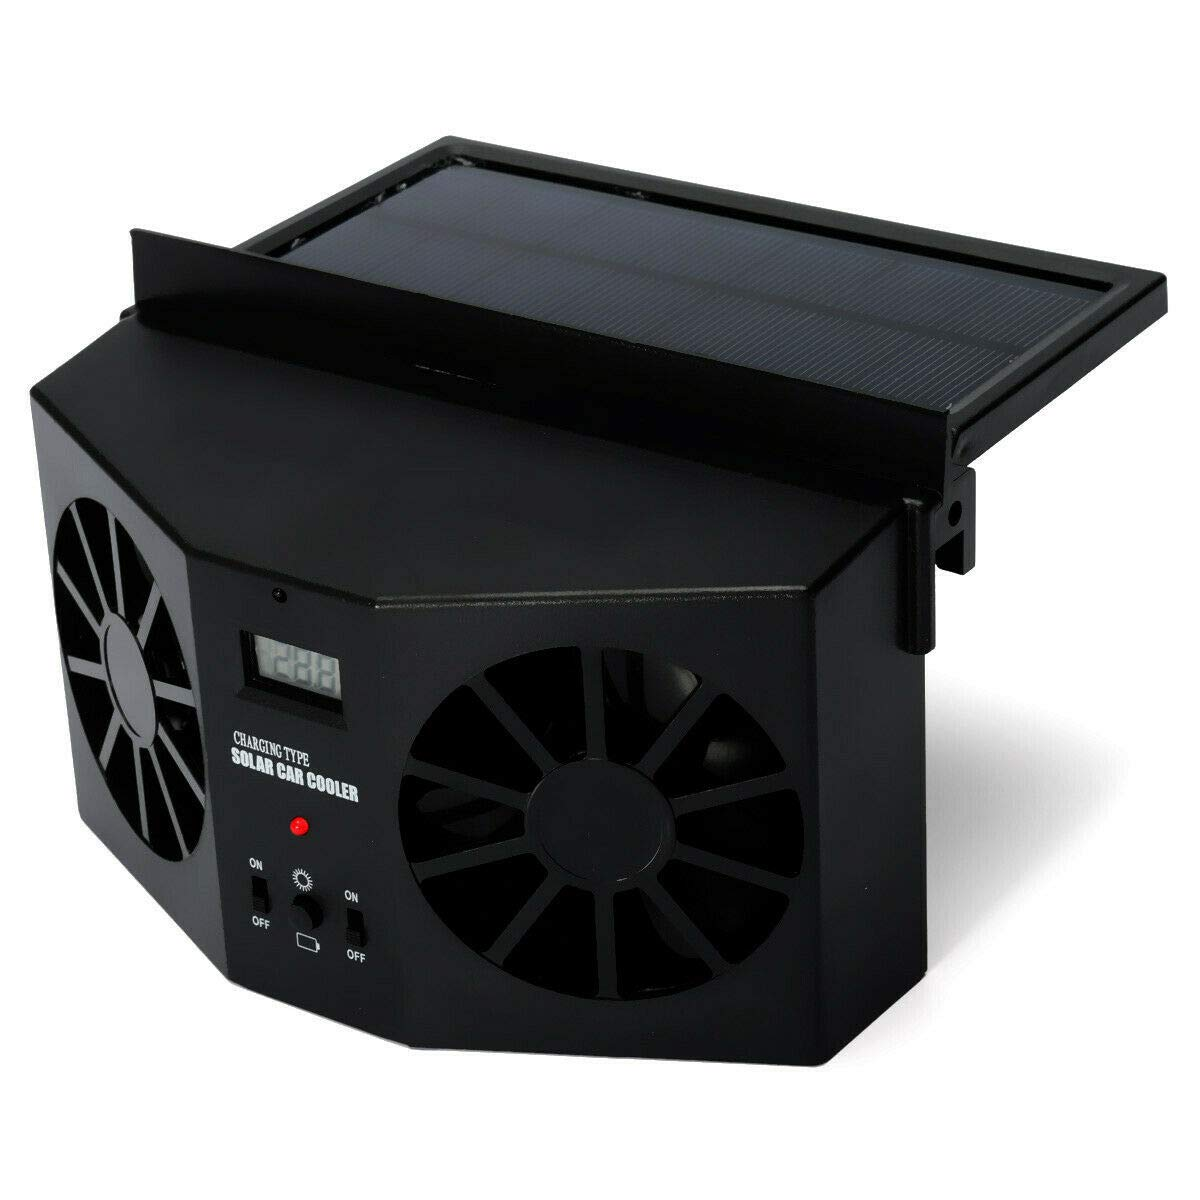 MASO Solar Powered Car Exhaust Fan